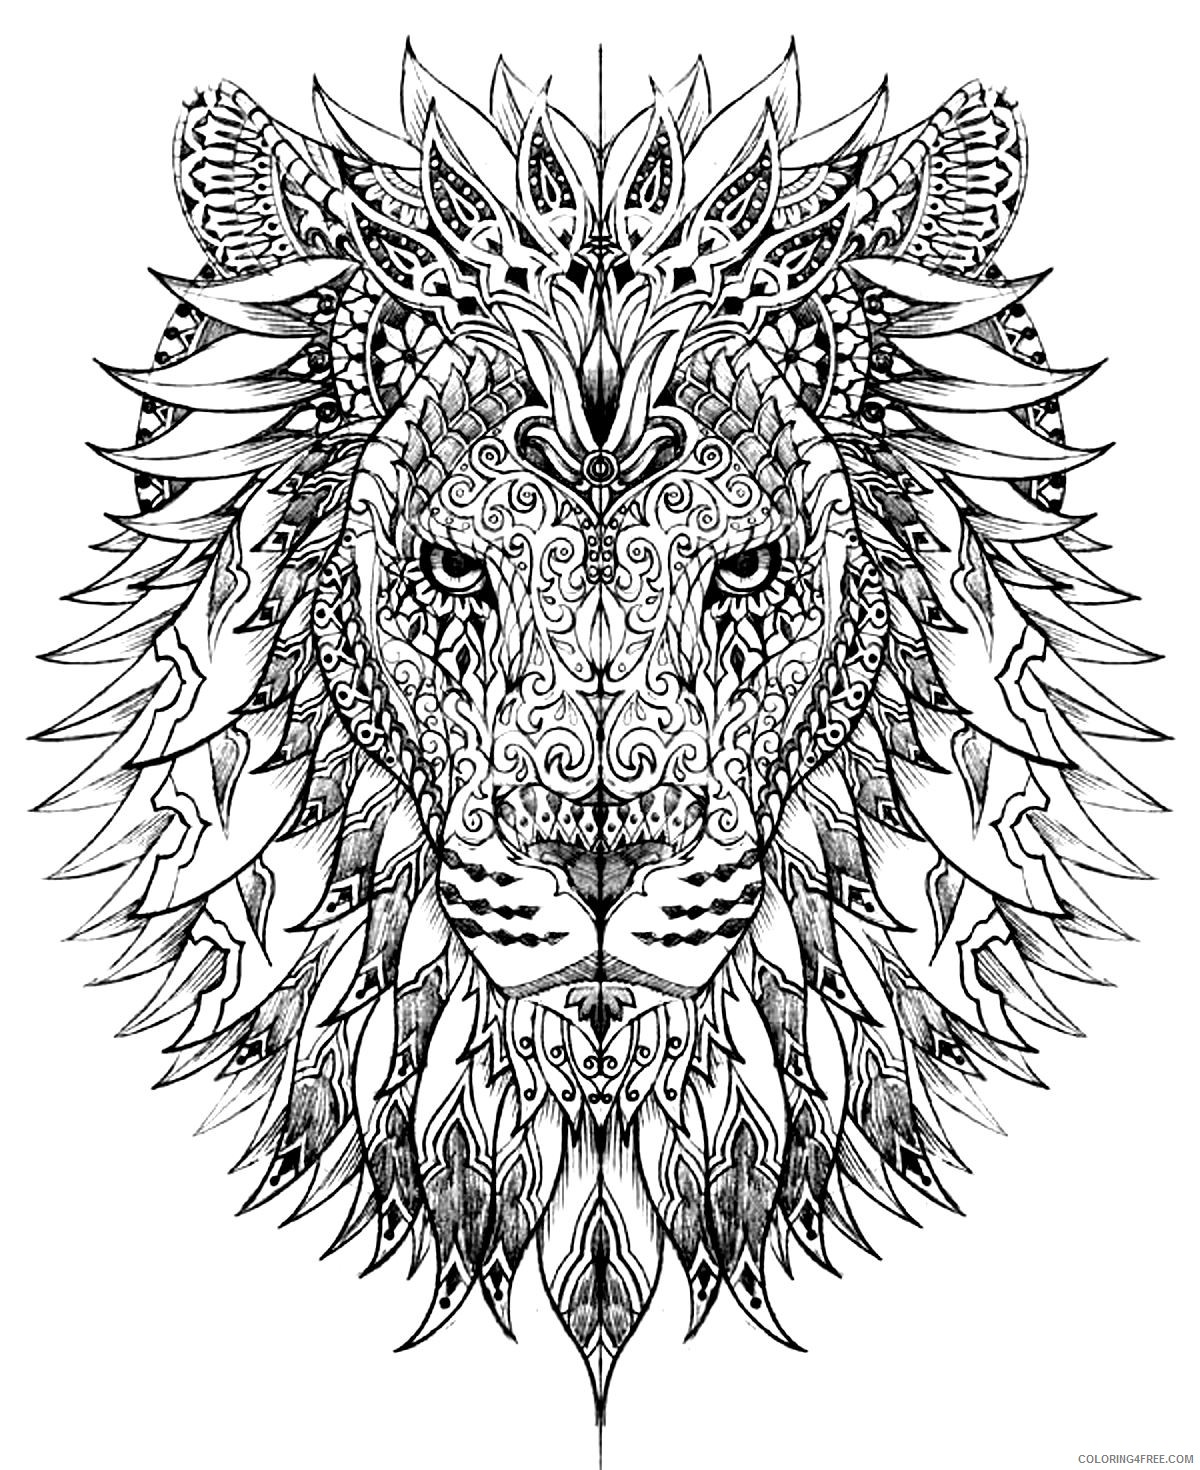 lion head adult coloring pages Coloring4free